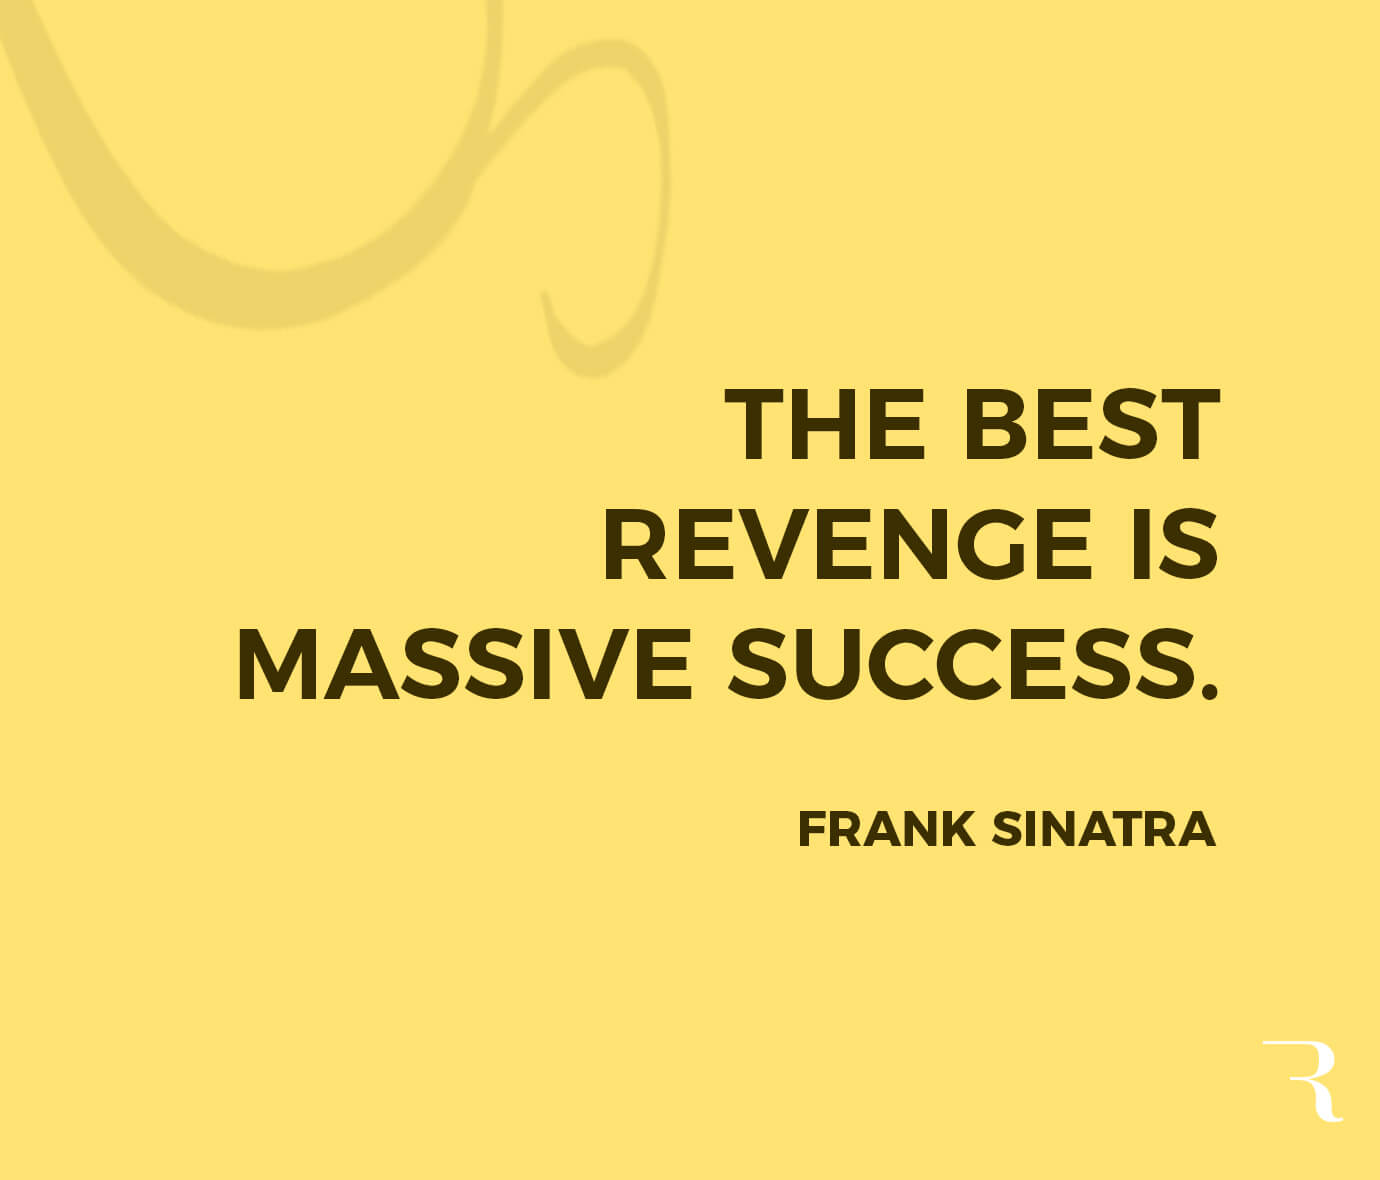 """Motivational Quotes: """"The best revenge is massive success."""" 112 Motivational Quotes to Be a Better Entrepreneur"""